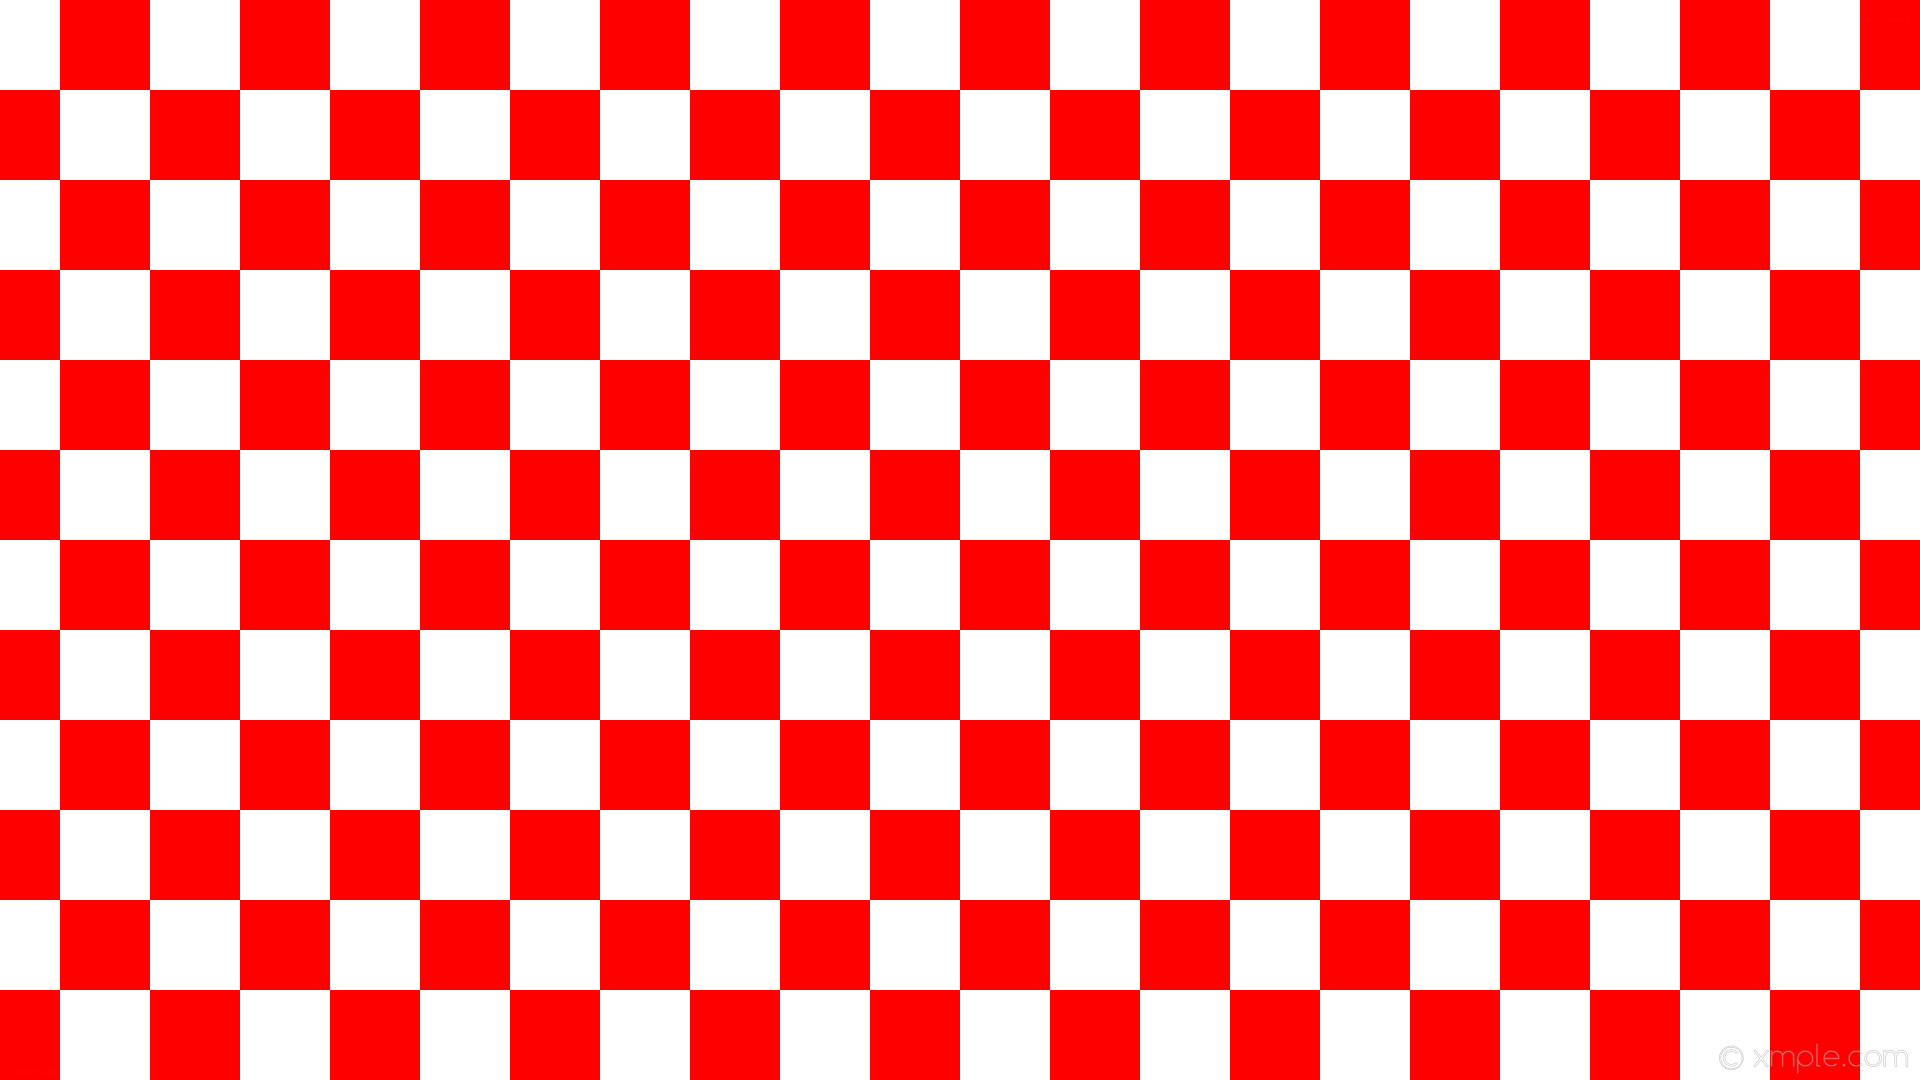 1920x1080 Wallpaper Squares White Red Checkered Indian Ghost Cd5c5c F8f8ff Diagonal 80A